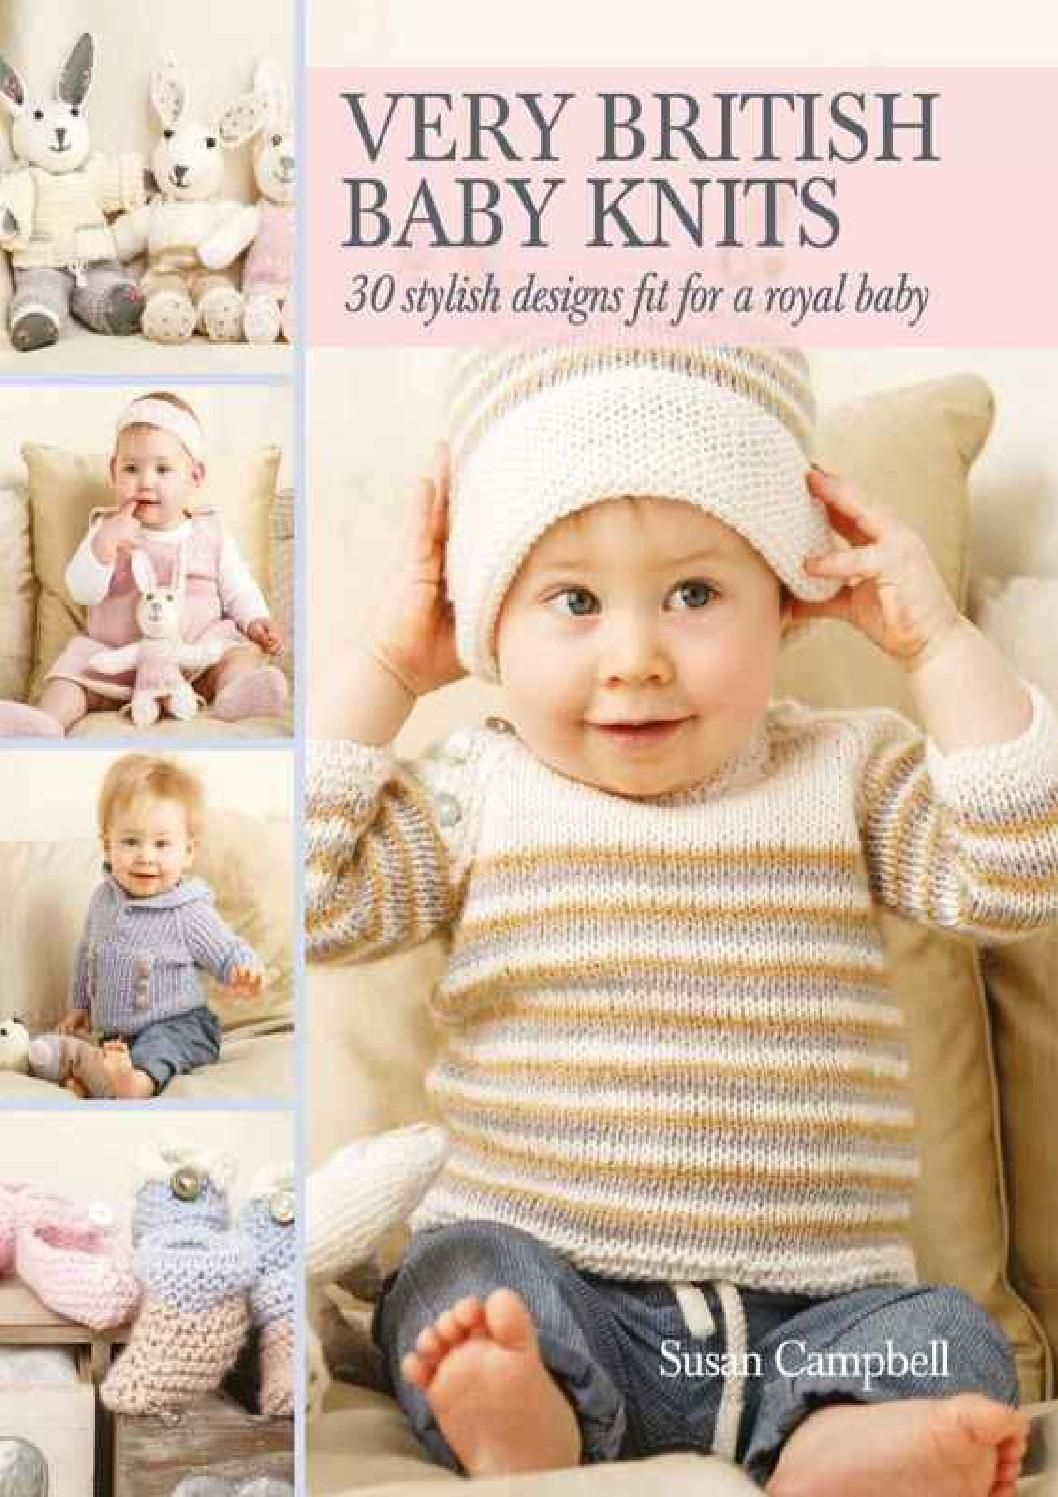 Susan campbell | Craft books, Knit patterns and Dolls